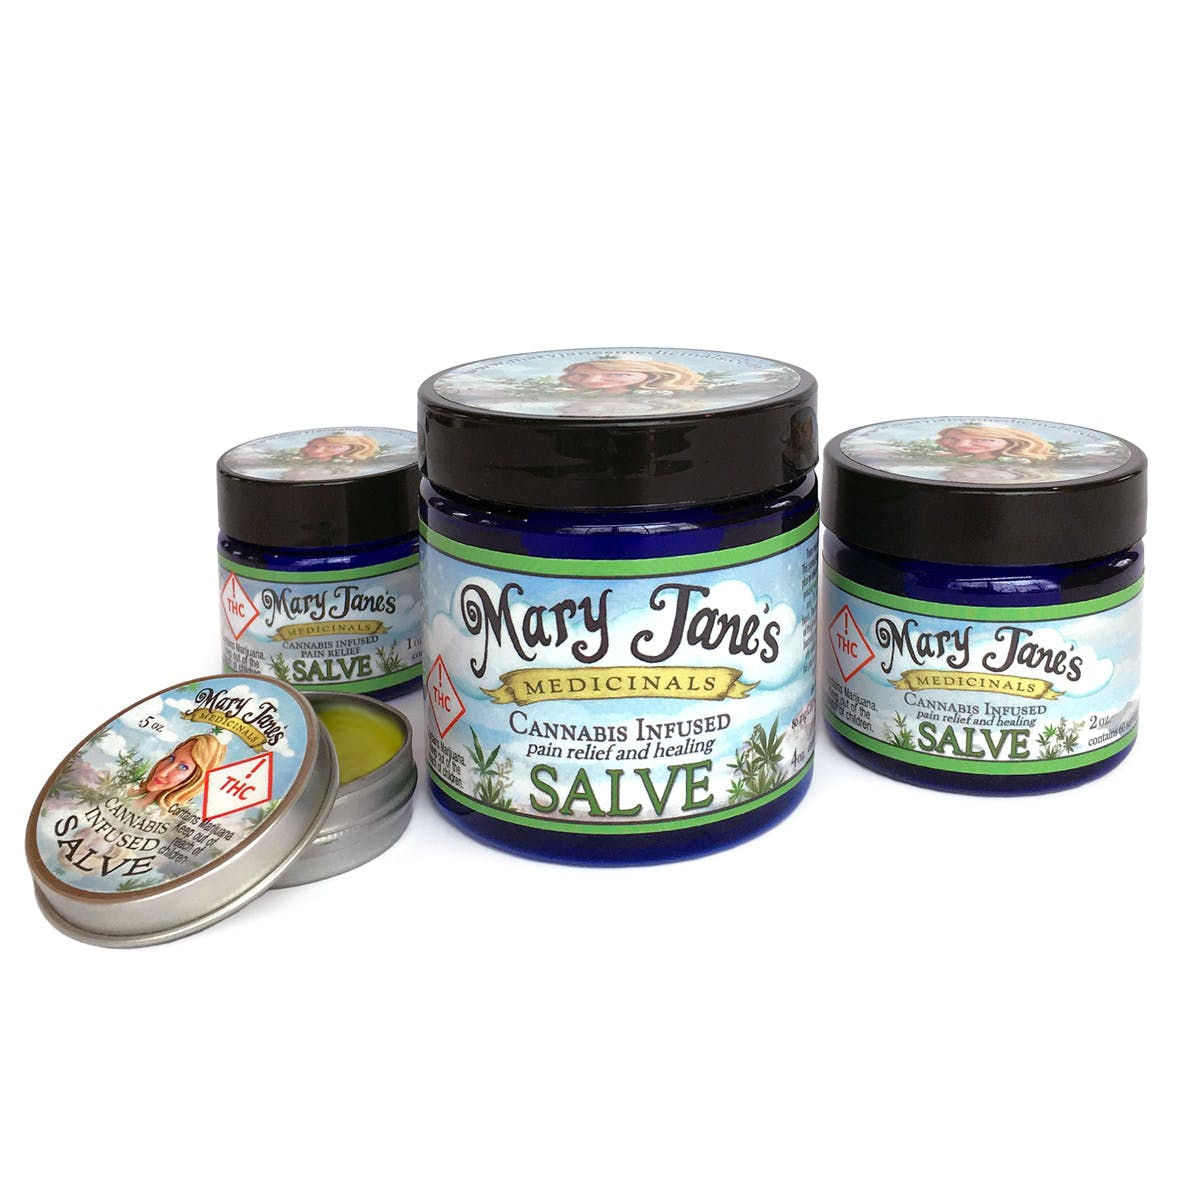 marijuana-dispensaries-oneeleven-in-moffat-pain-relief-salve-2c-4oz